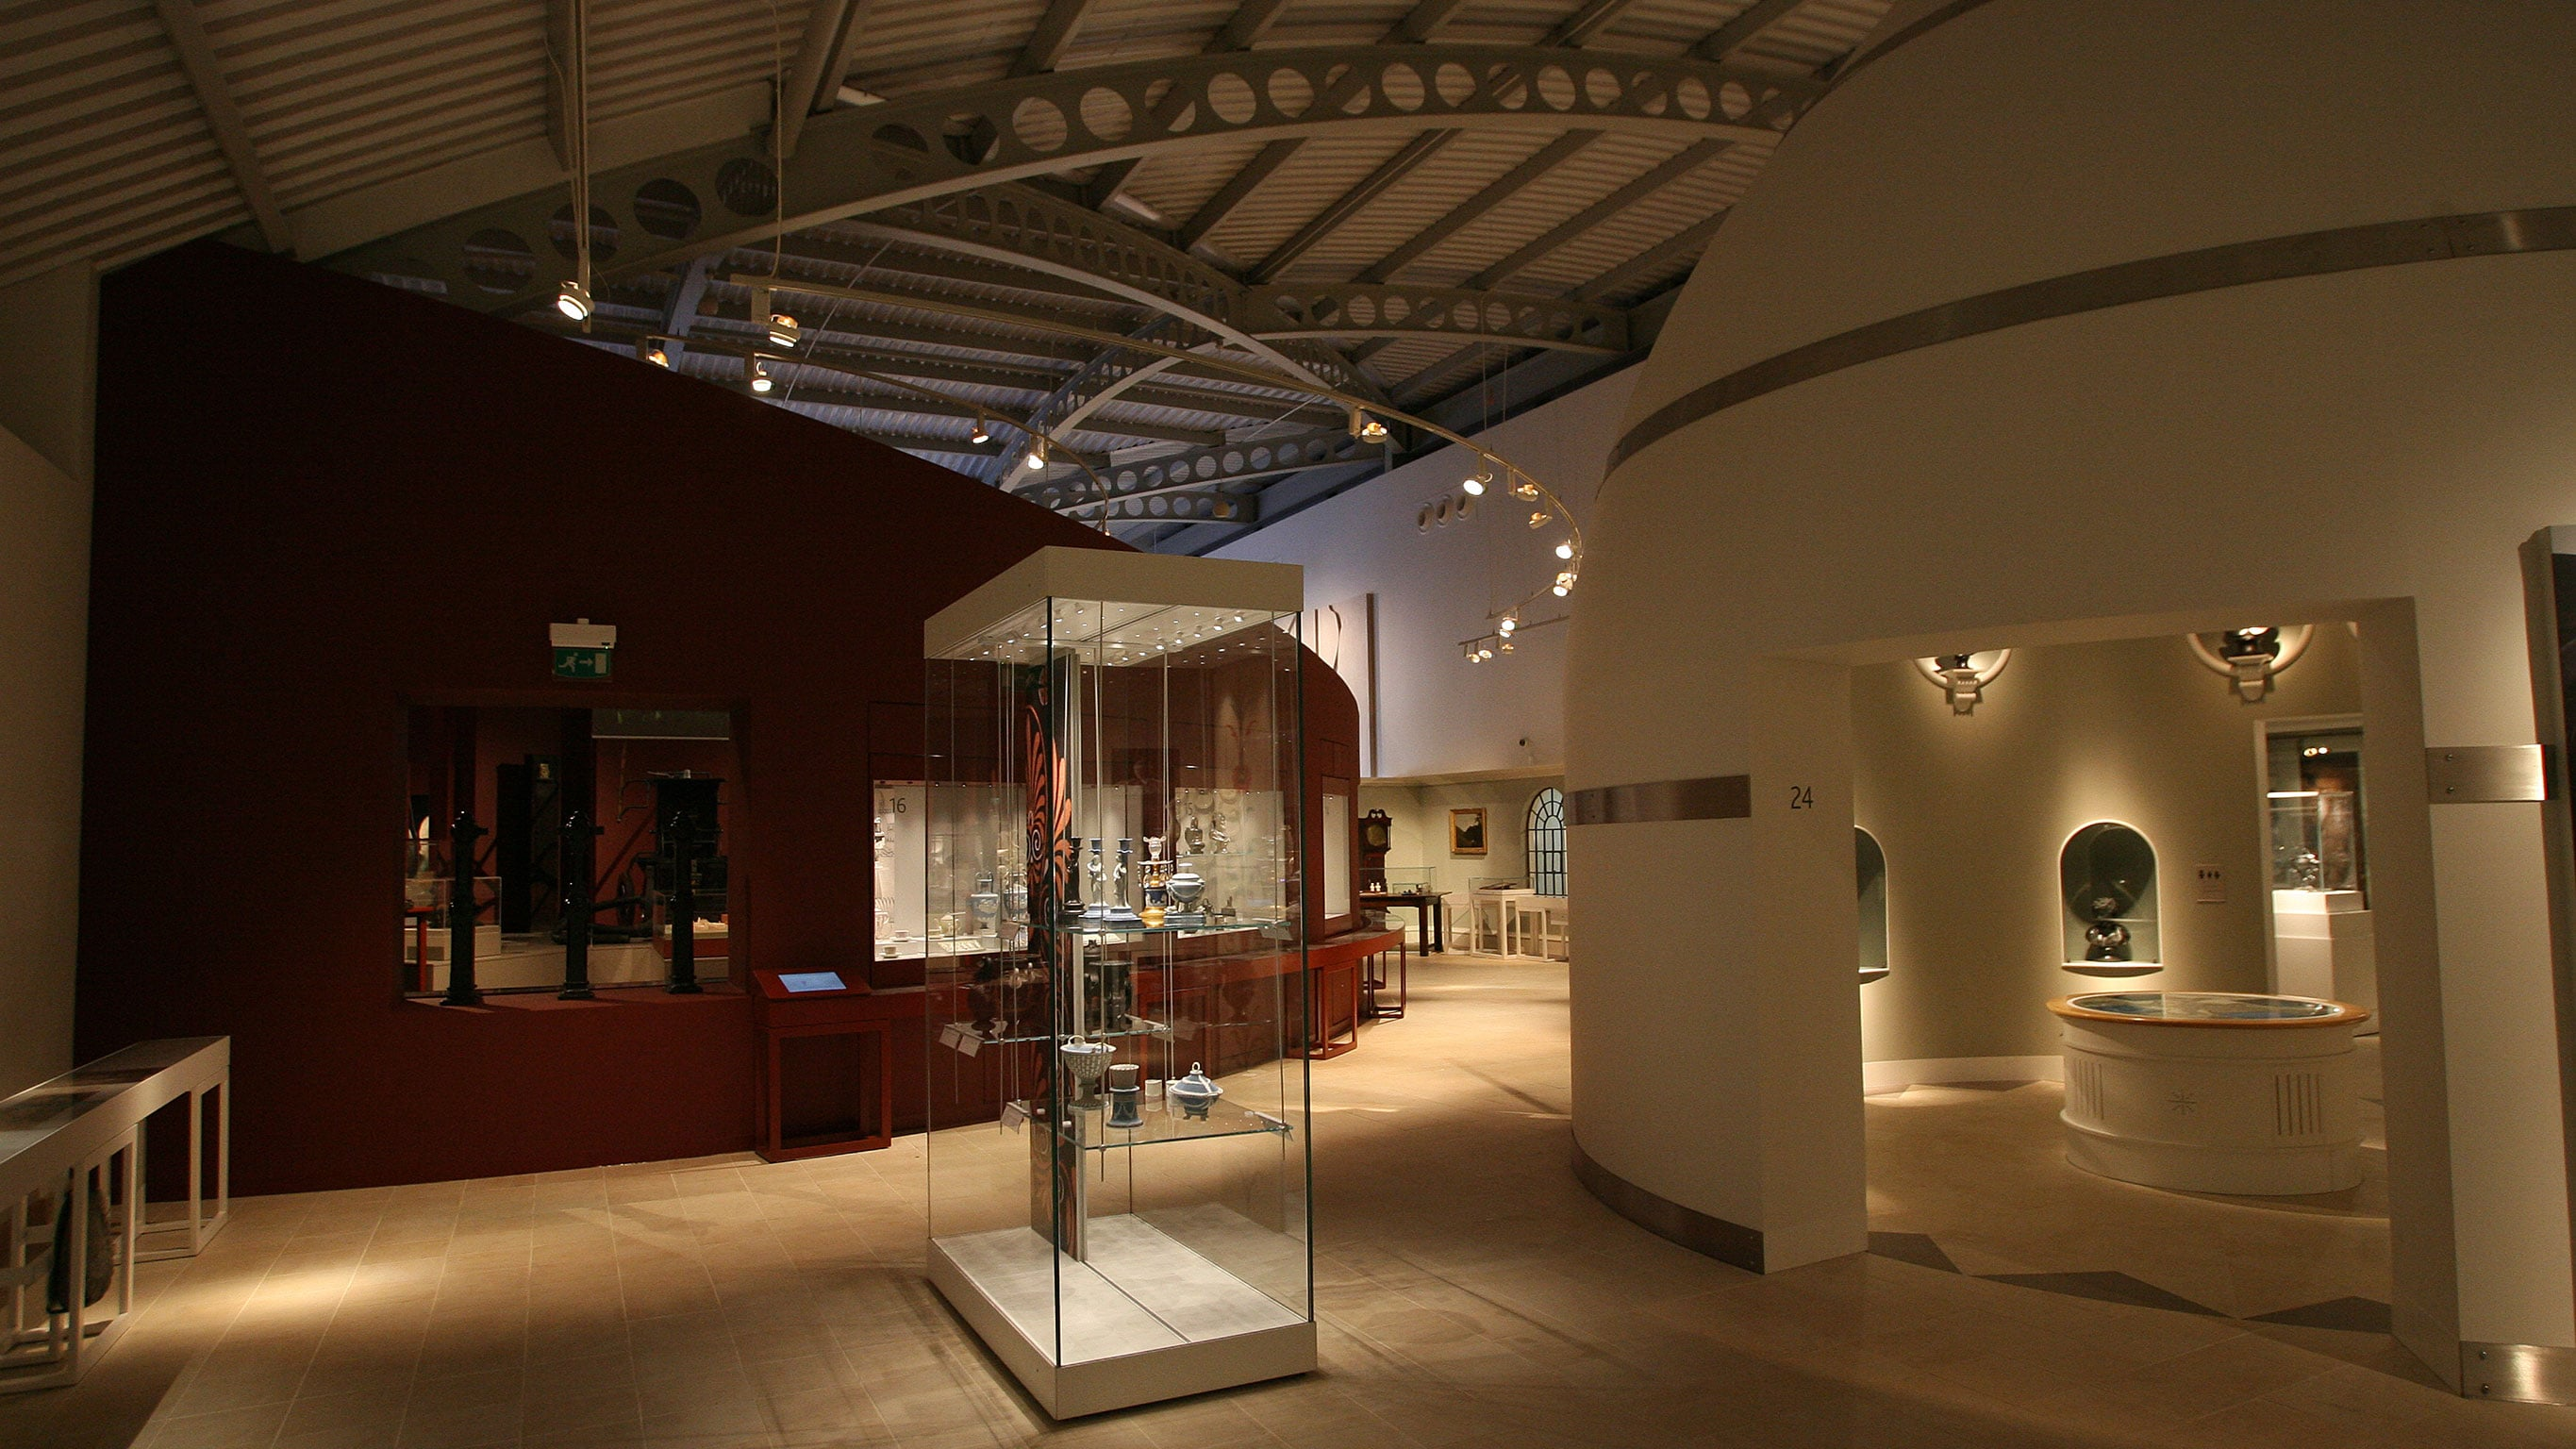 The museum provides a chronological history of the Wedgwood brand since its incarnation in 1759